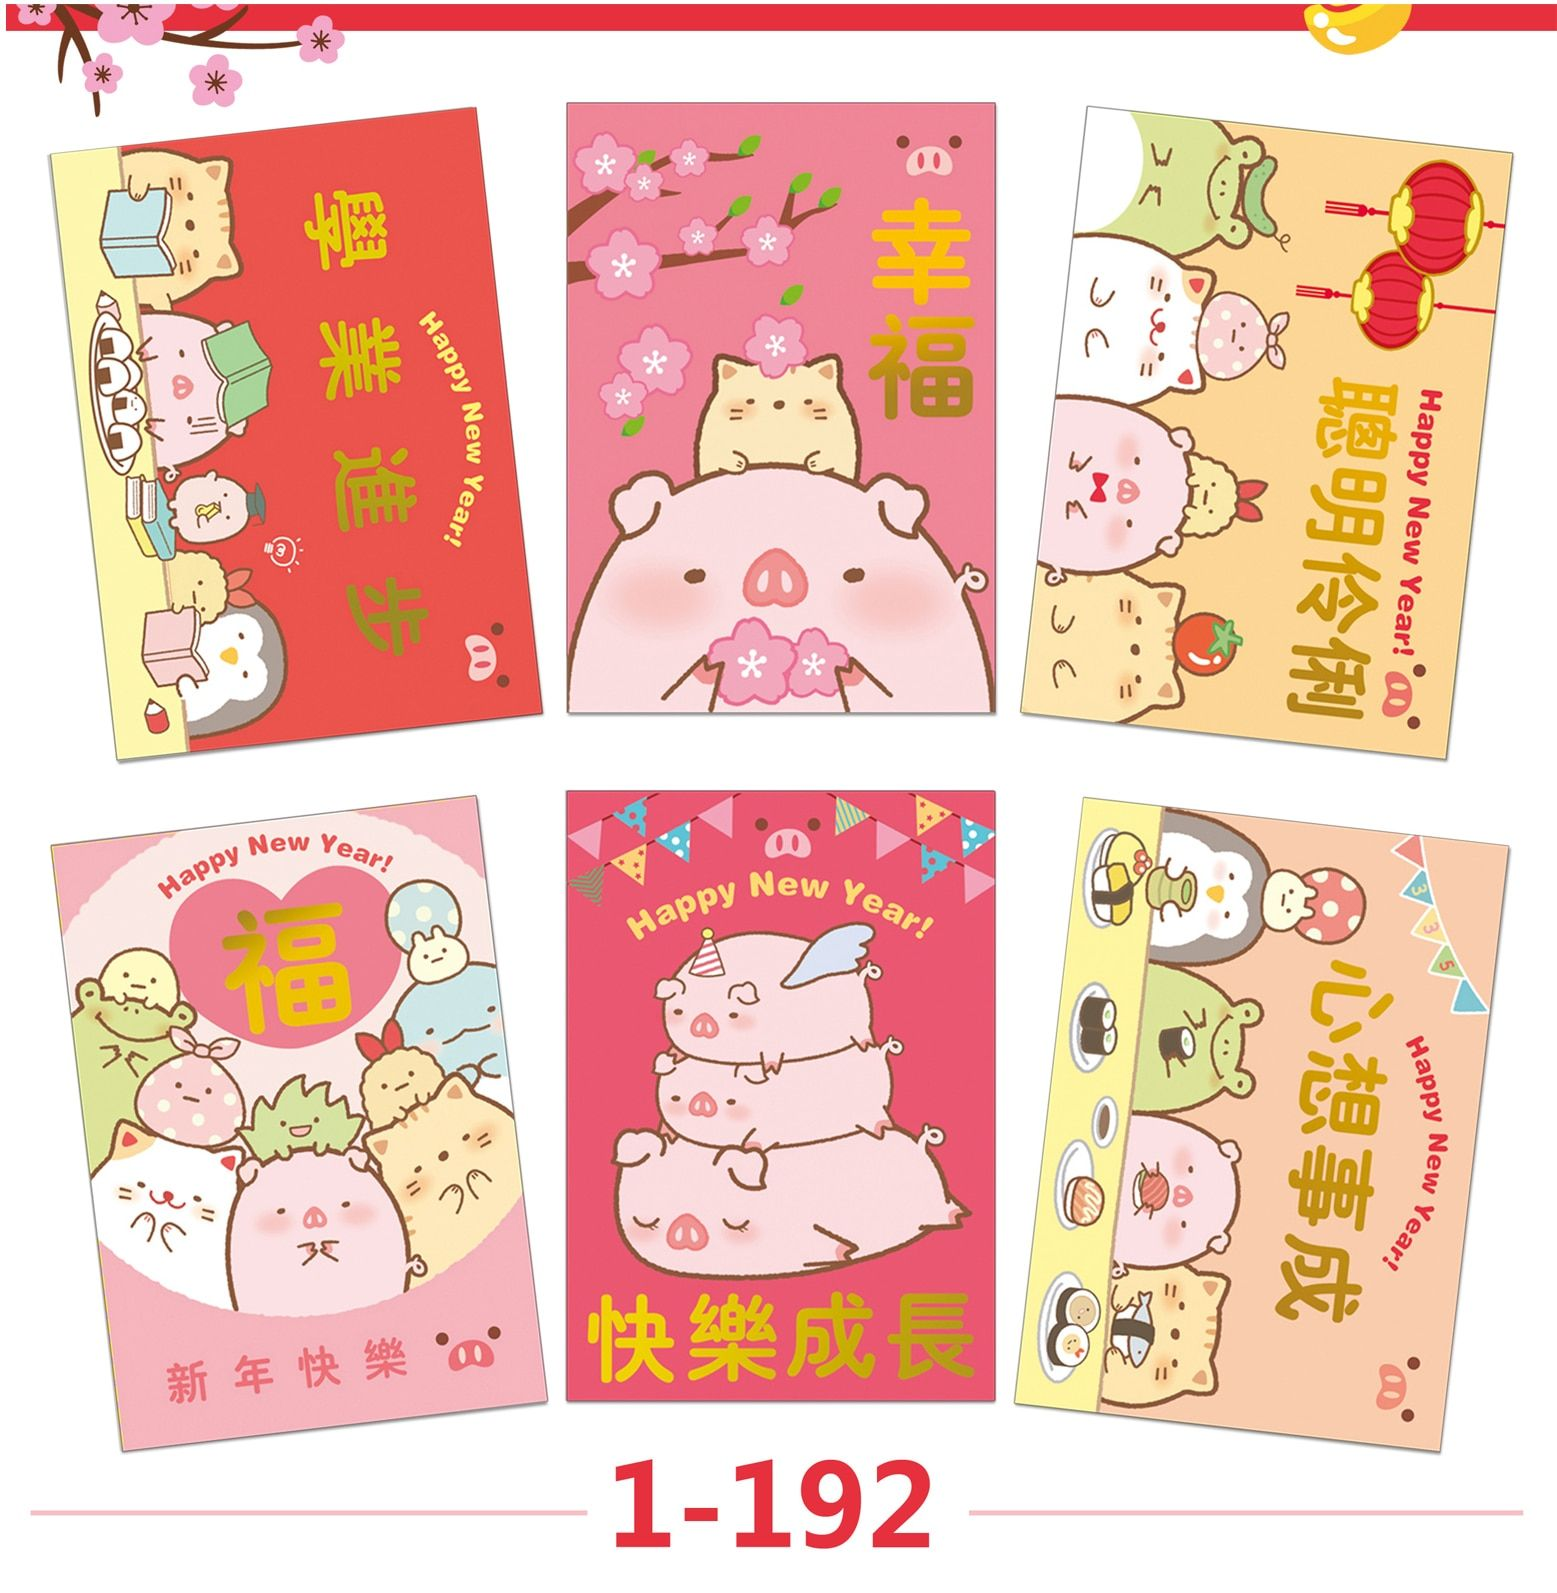 Cheap Cards Invitations Buy Directly From China Suppliers 10 Packs 60 Pcs Cartoon Cute Pig Design Red Packet 201 Red Packet Red Envelope Design Red Envelope